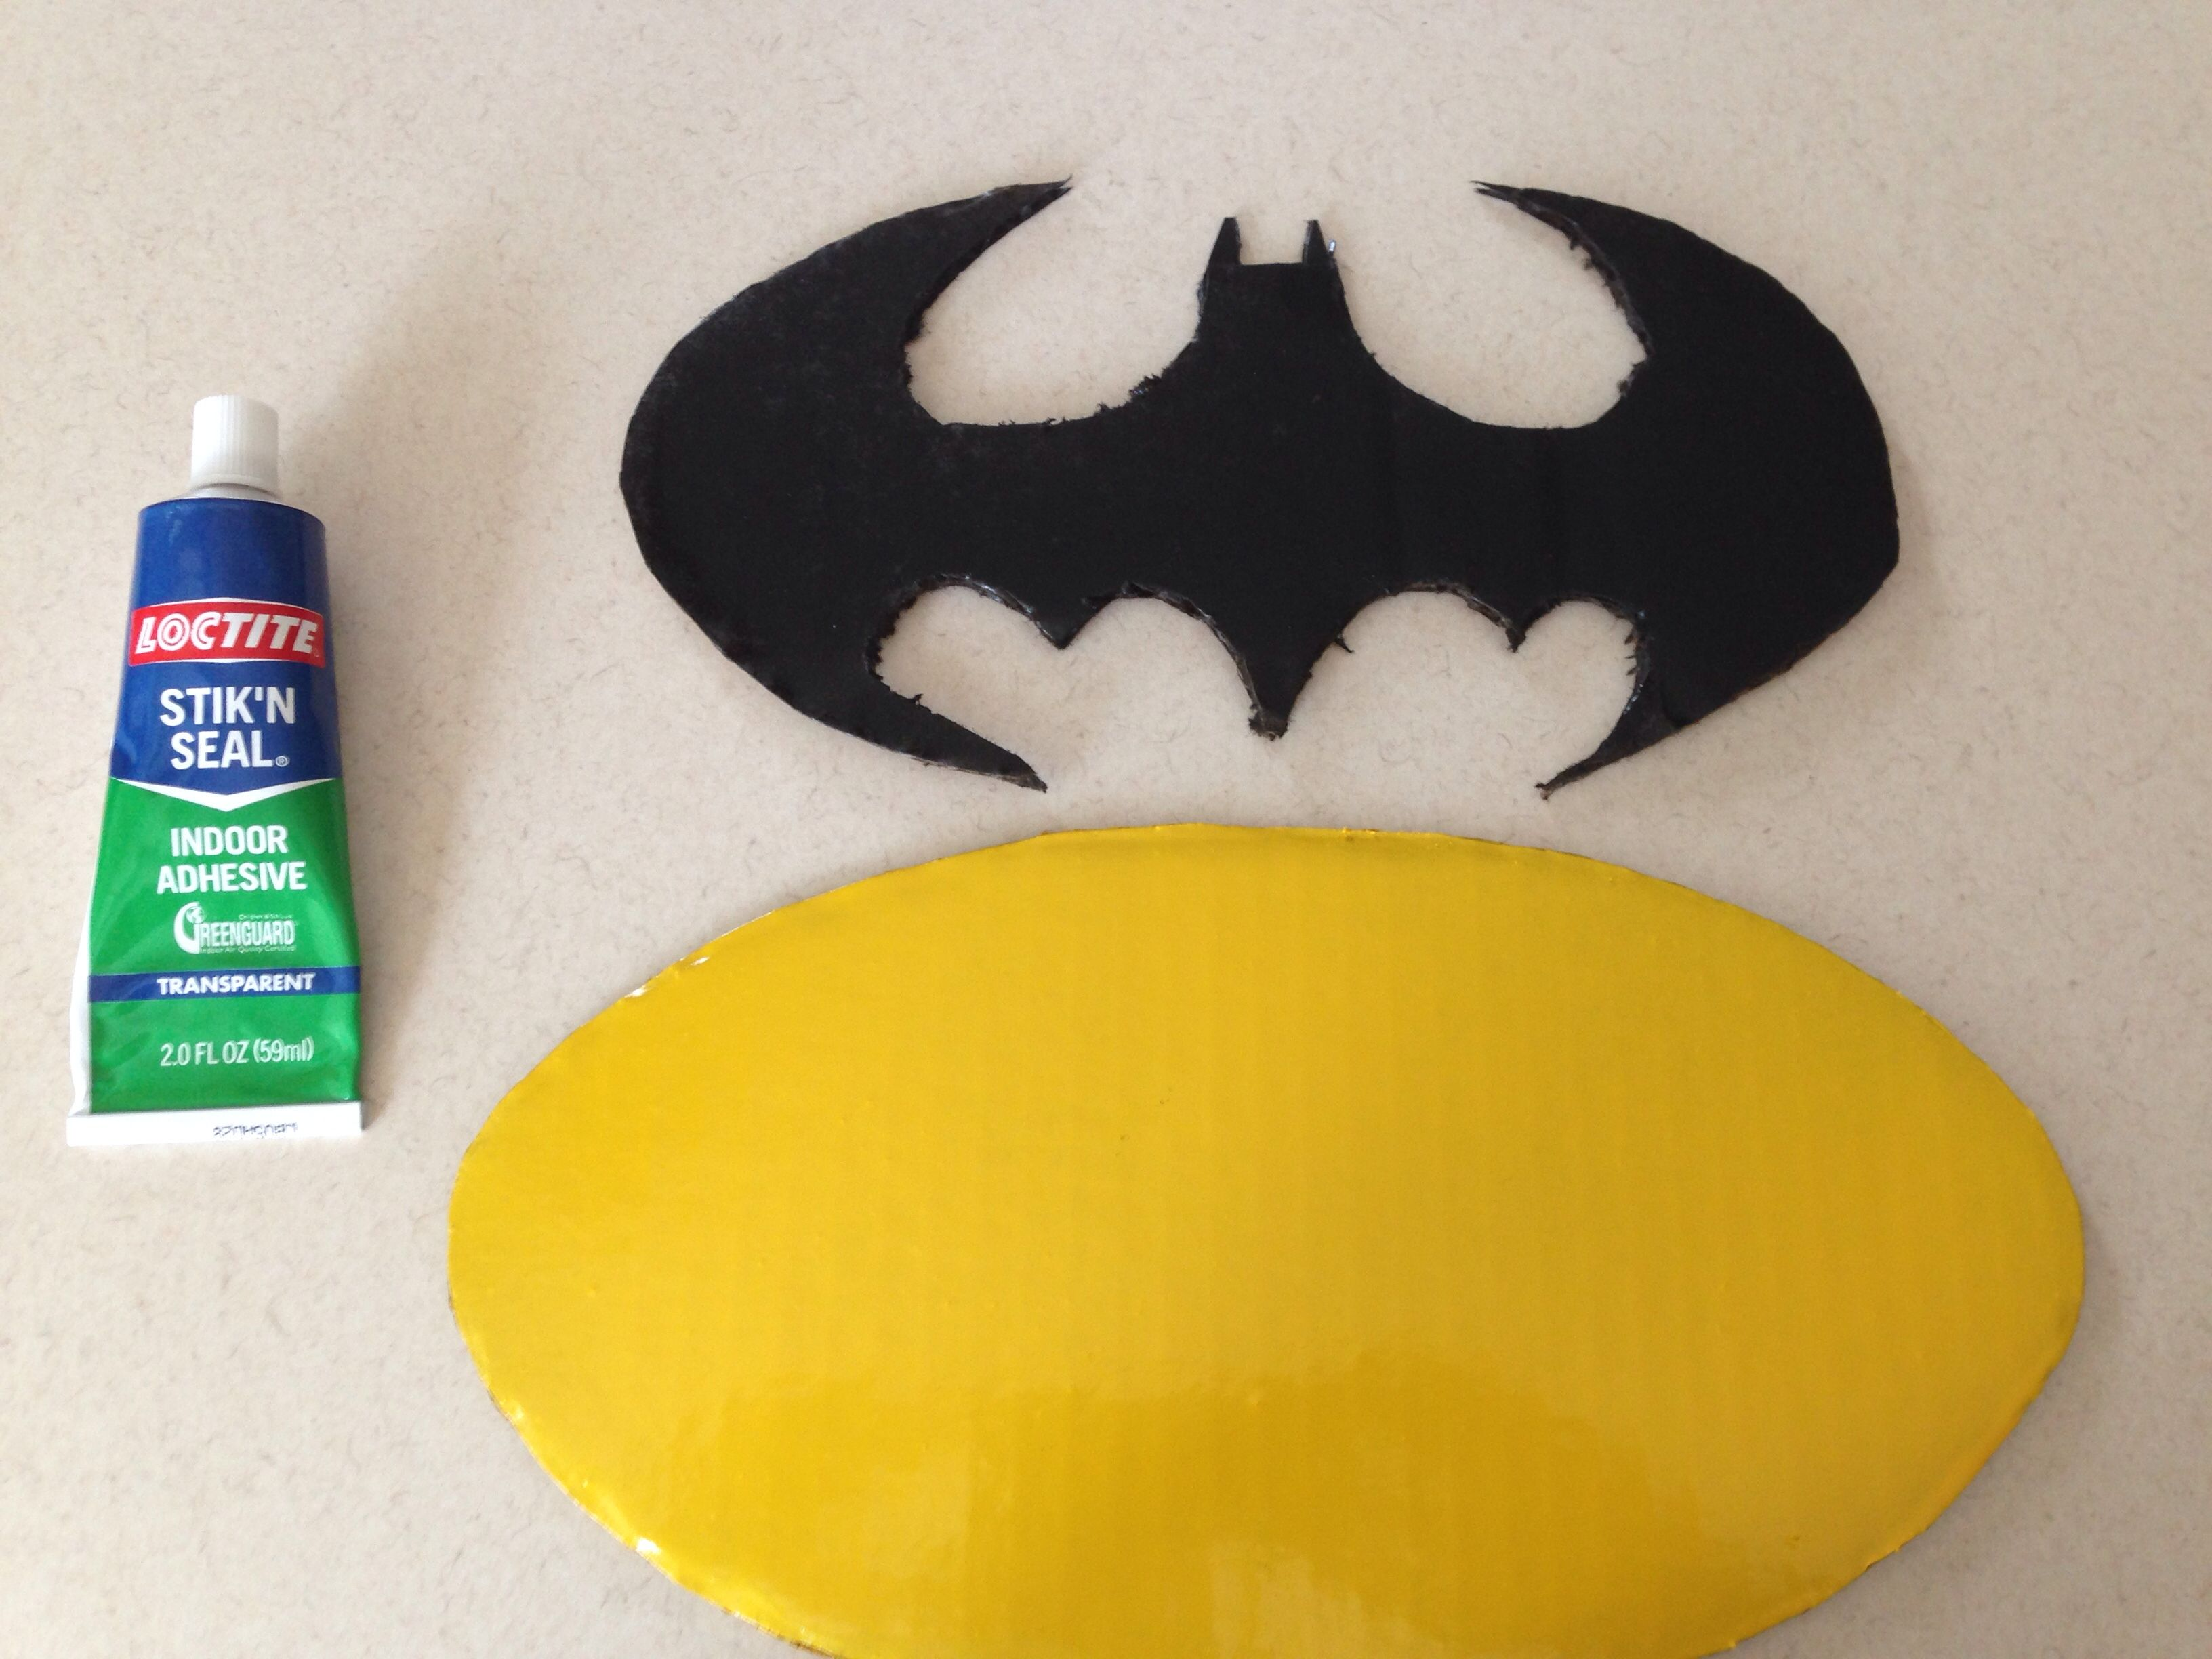 step 3.1 batman logo made from cardboard and painted. just sketched